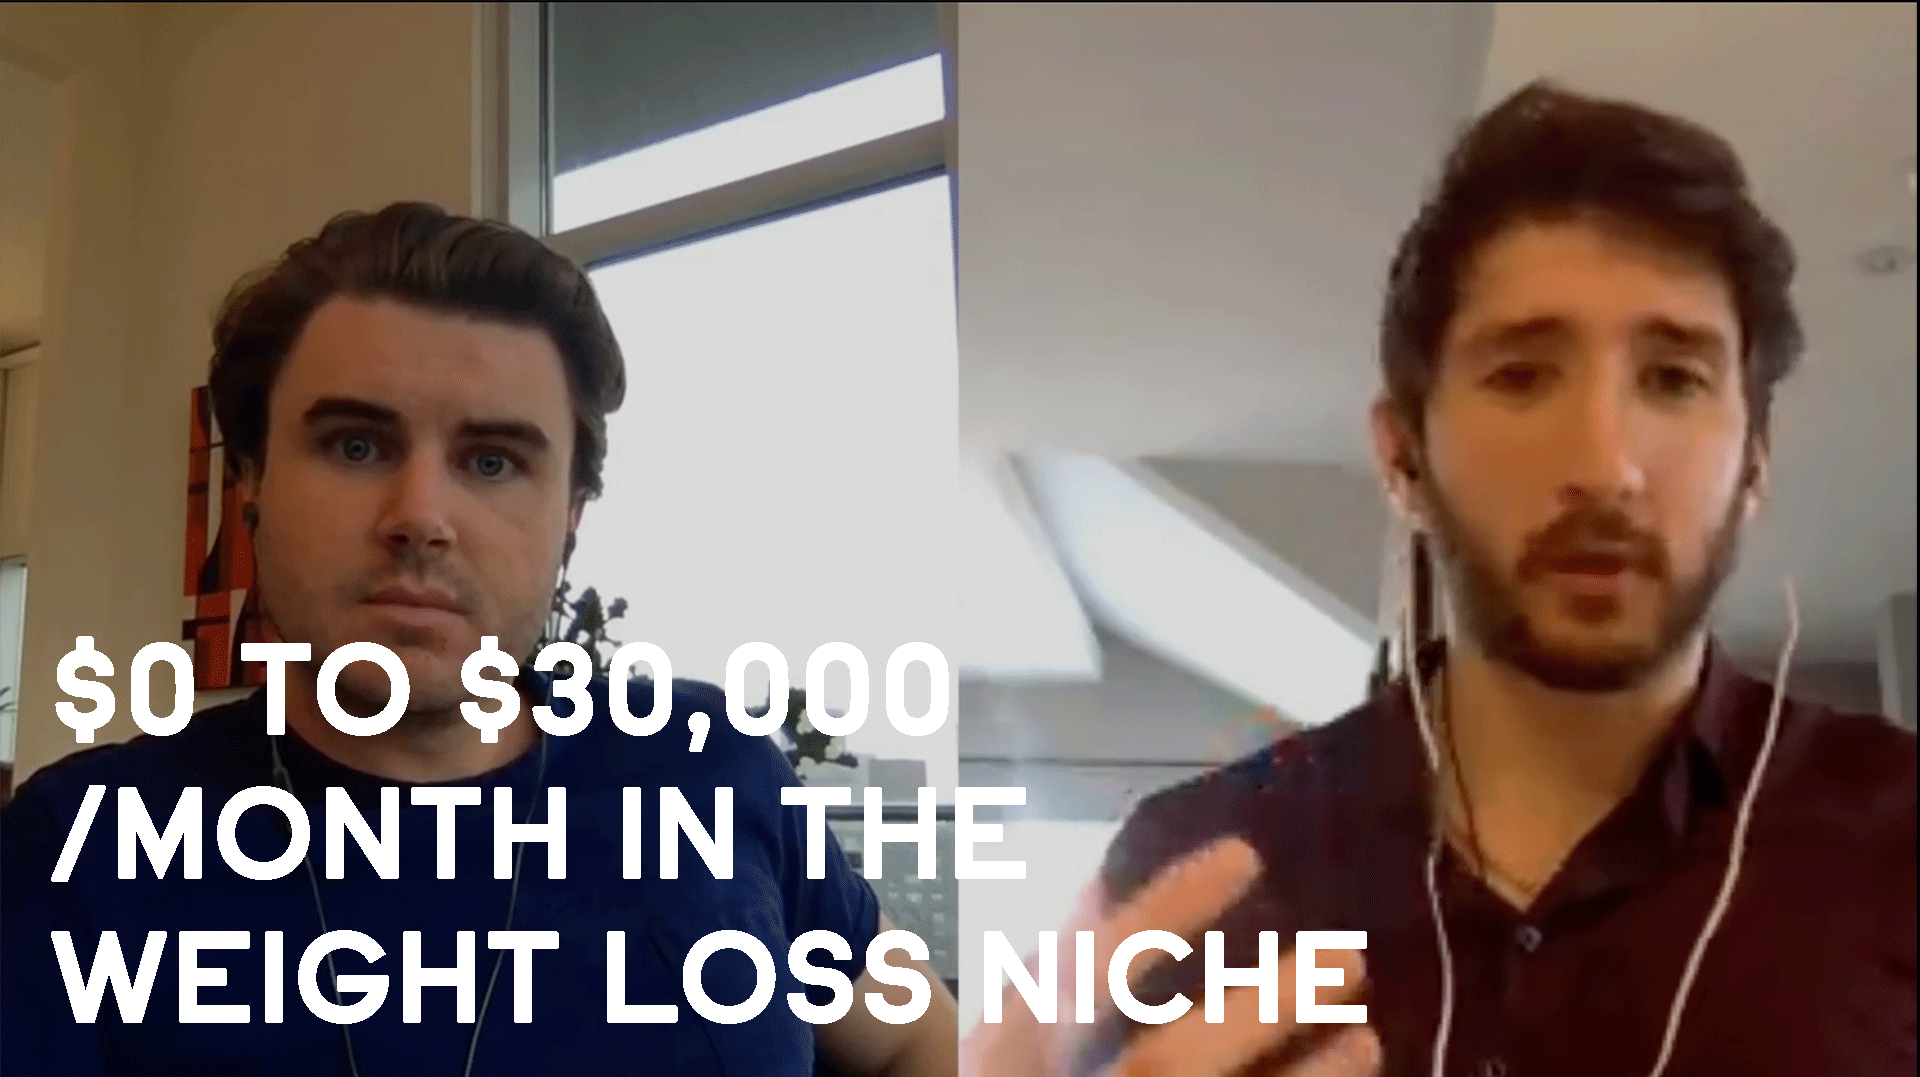 How Andrew Went From $0 to $30,000 /Month In The Weight Loss Niche